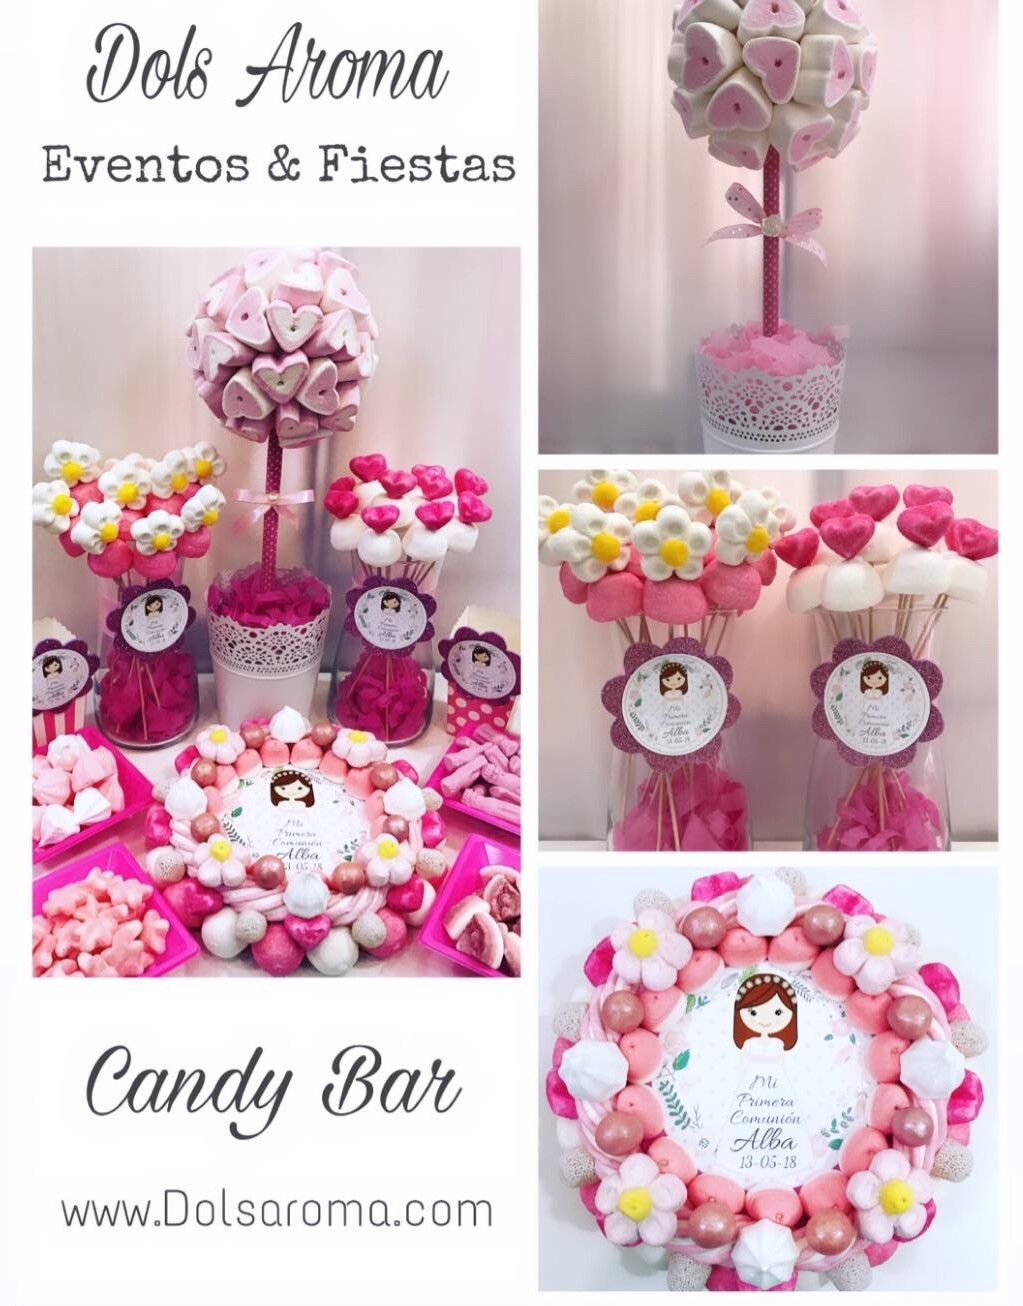 MESA DULCE/ CANDY BAR/ COMUNION ROSA